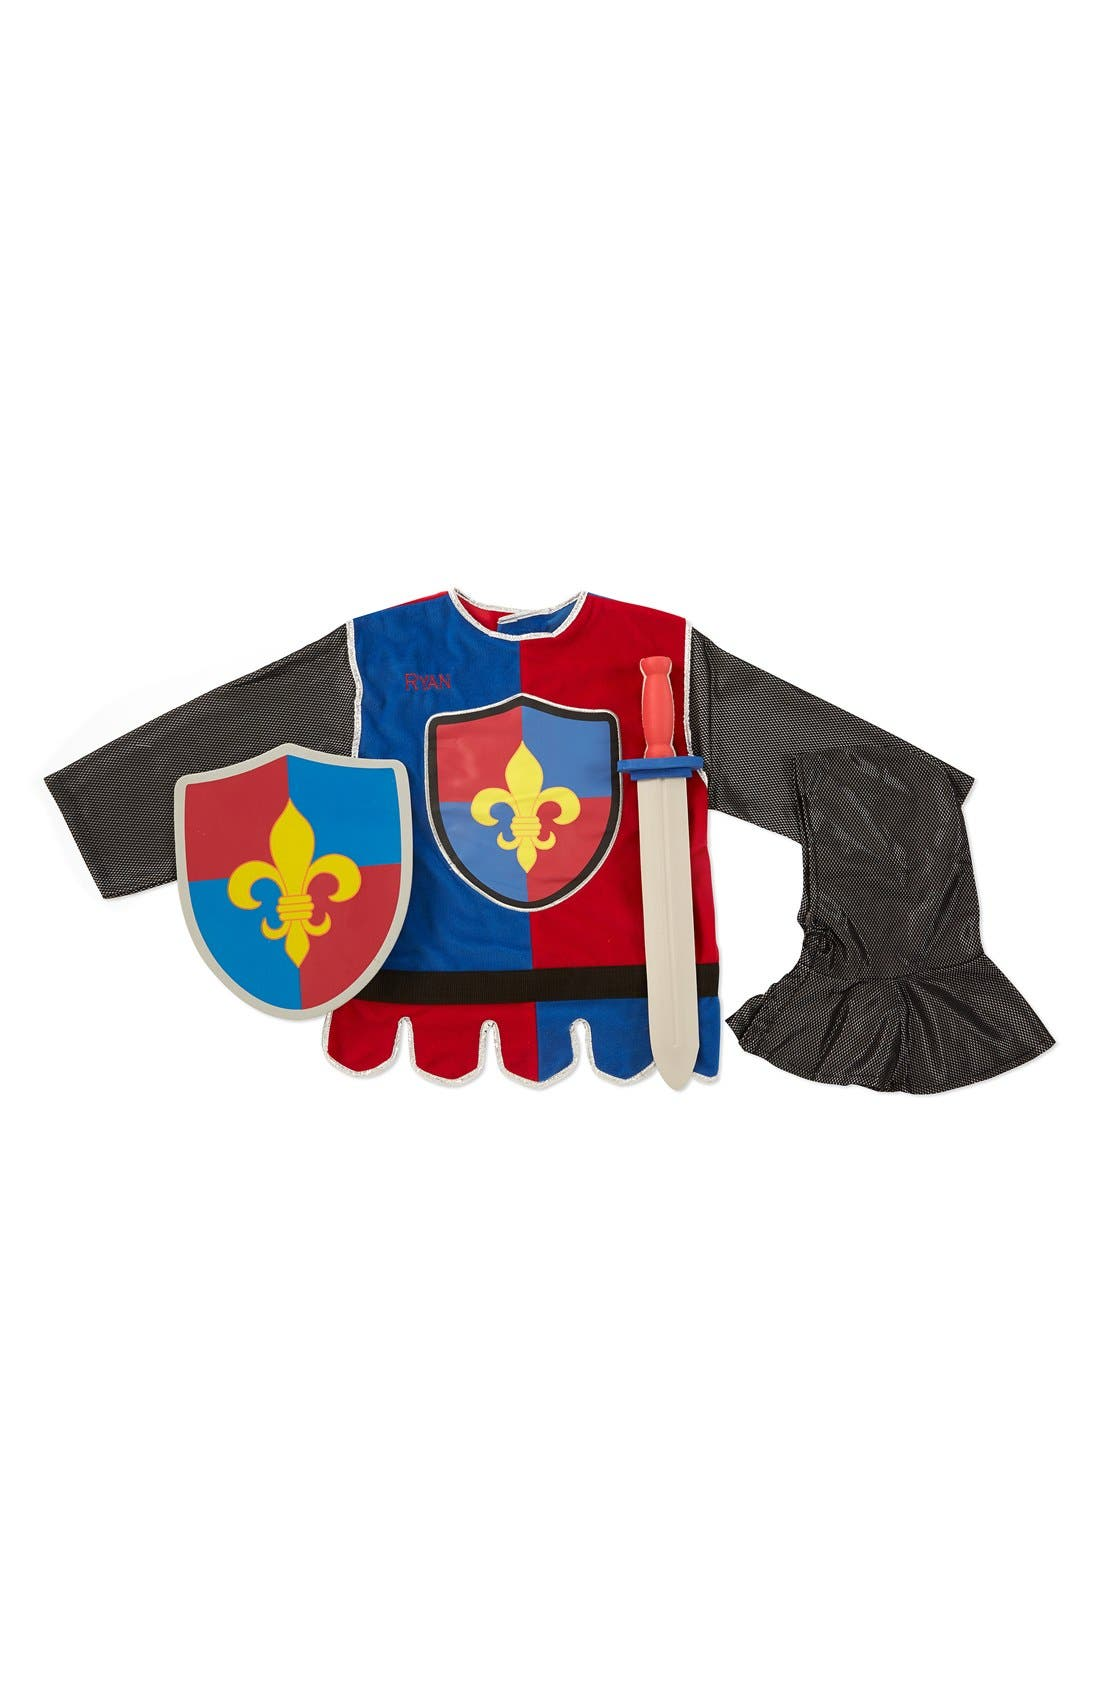 Alternate Image 1 Selected - Melissa & Doug 'Knight' Personalized Costume Set (Toddler)